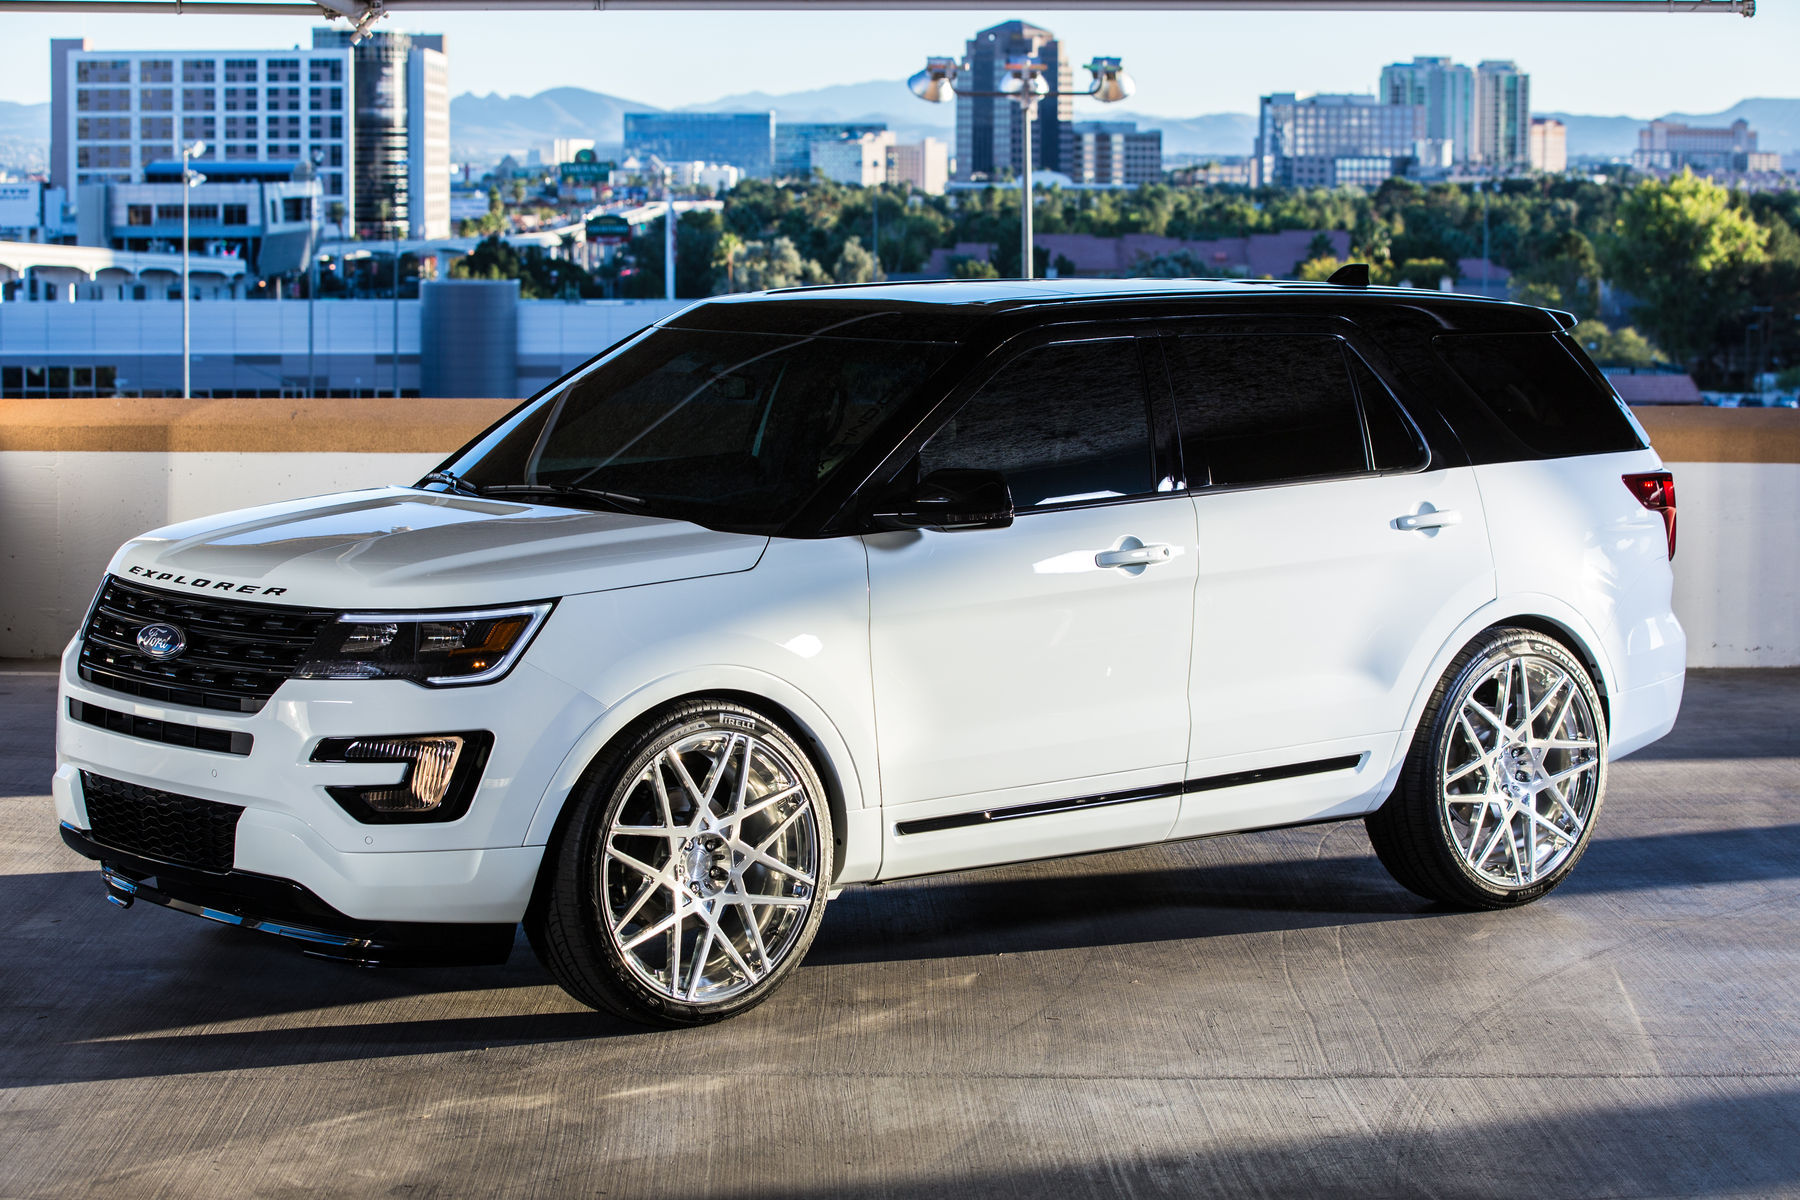 2015 Ford Explorer Sport | 2015 MAD Industries Ford Explorer Sport - Side Profile View